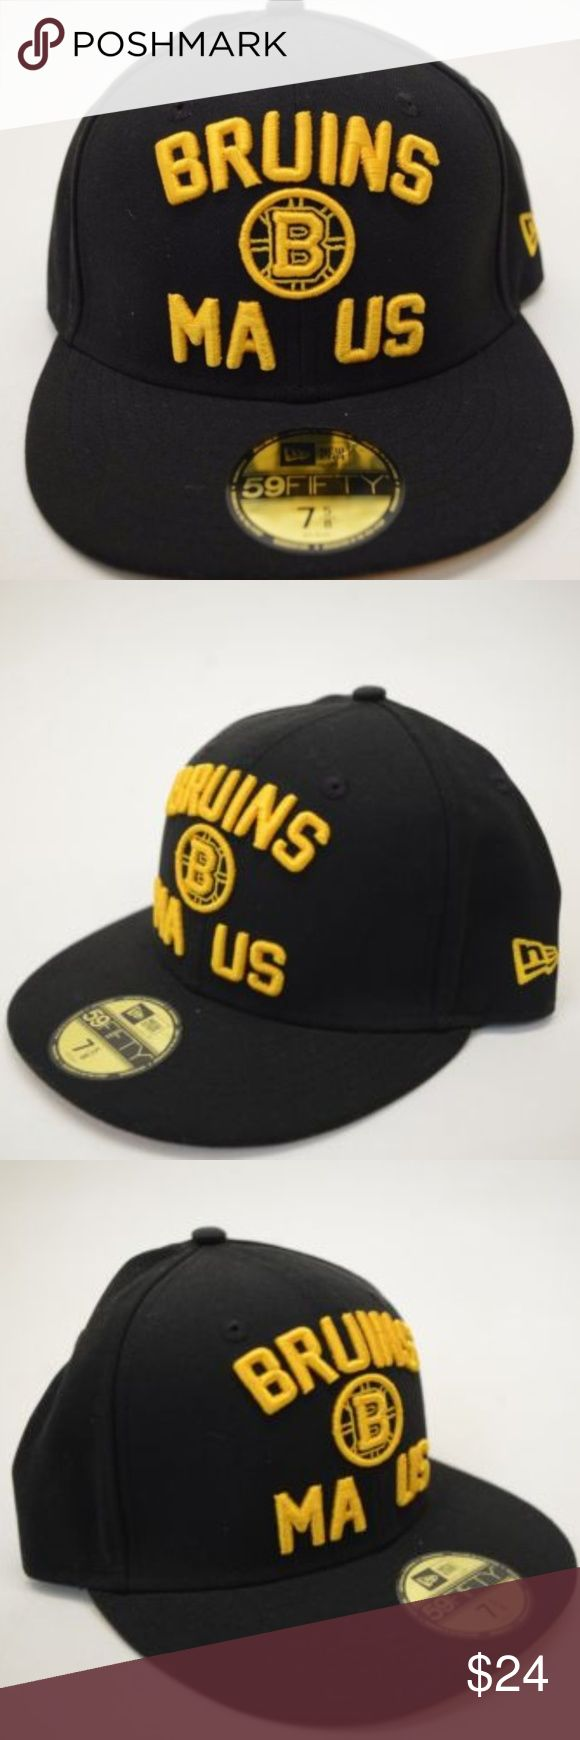 48cd69b0 Men's New Era Boston Bruins 59Fifty Sz 7 5/8 Cap NEW!! Men's New Era Boston  Bruins 59Fifty MA US 7 5/8Black Fitted Cap TRUE FITTED Closed back style ...